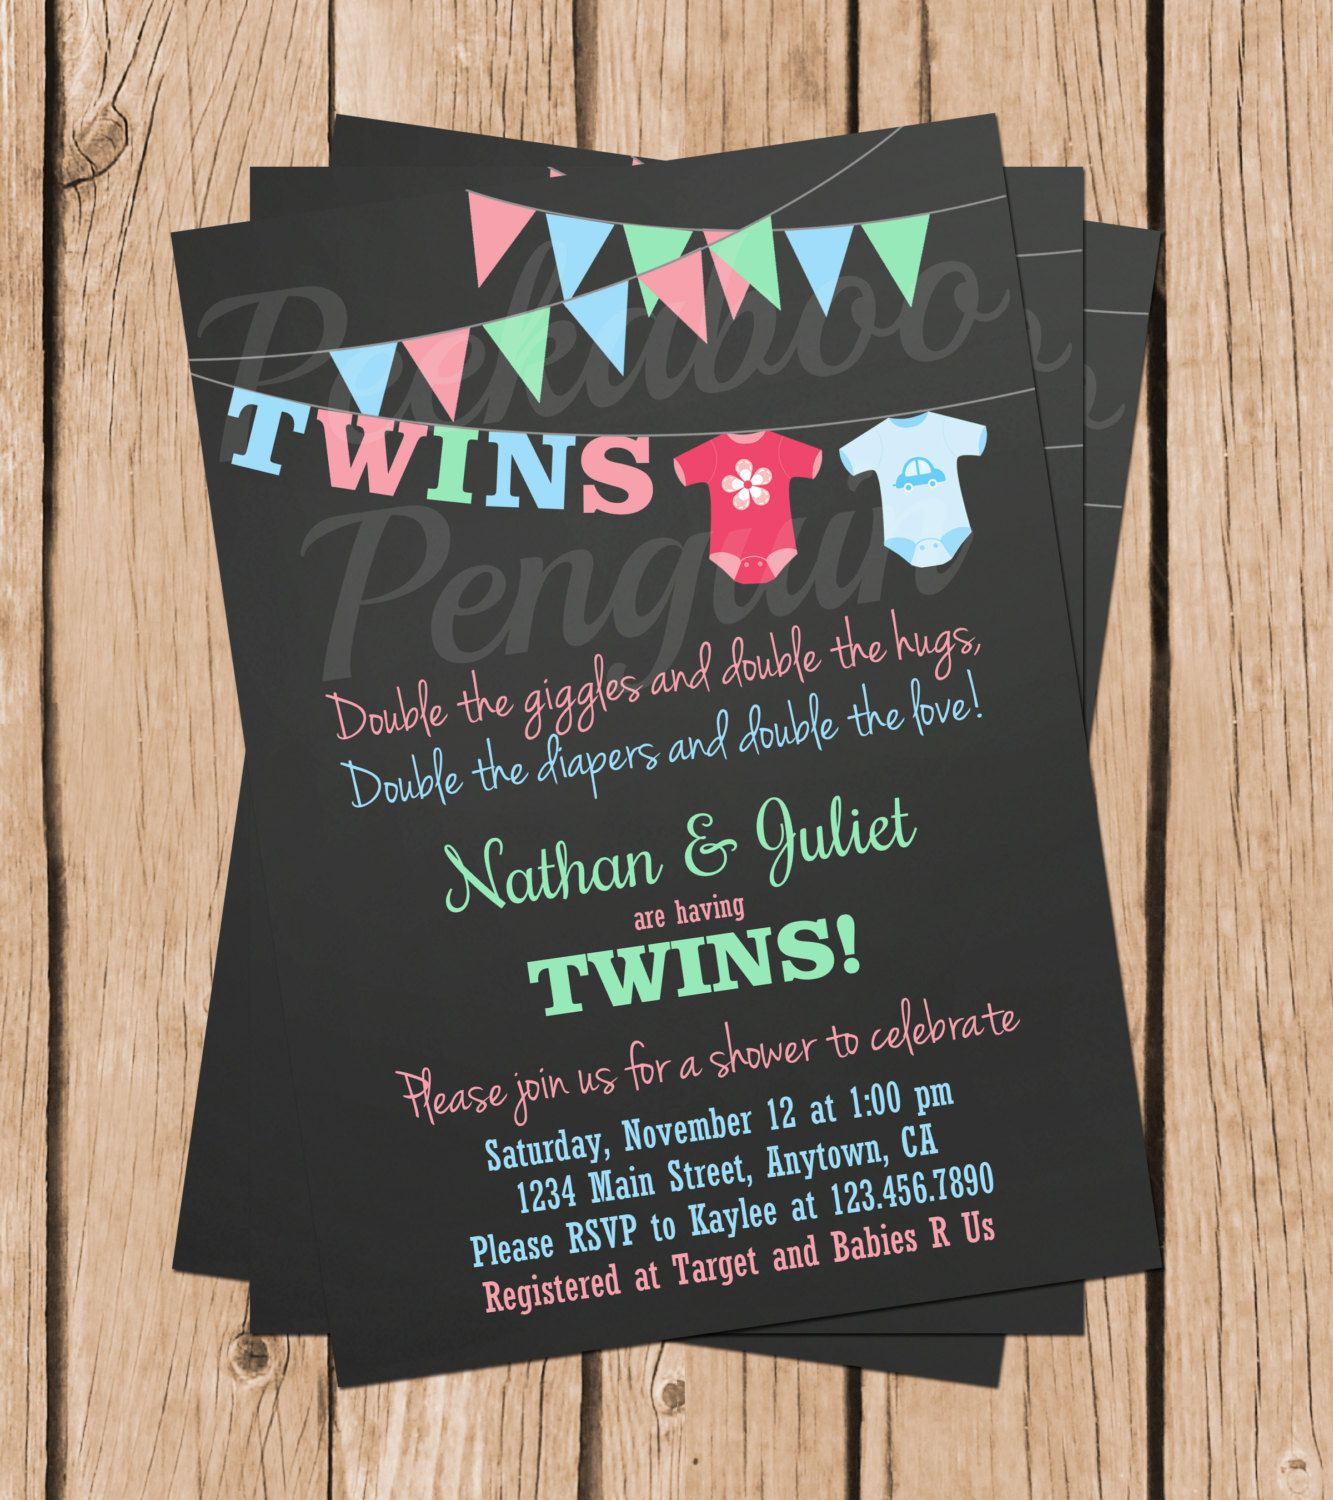 baby shower invitation wording for bringing diapers%0A Twins Baby Shower Invitations  Boy Girl Twins Shower  Couples Shower Invites   Coed Shower